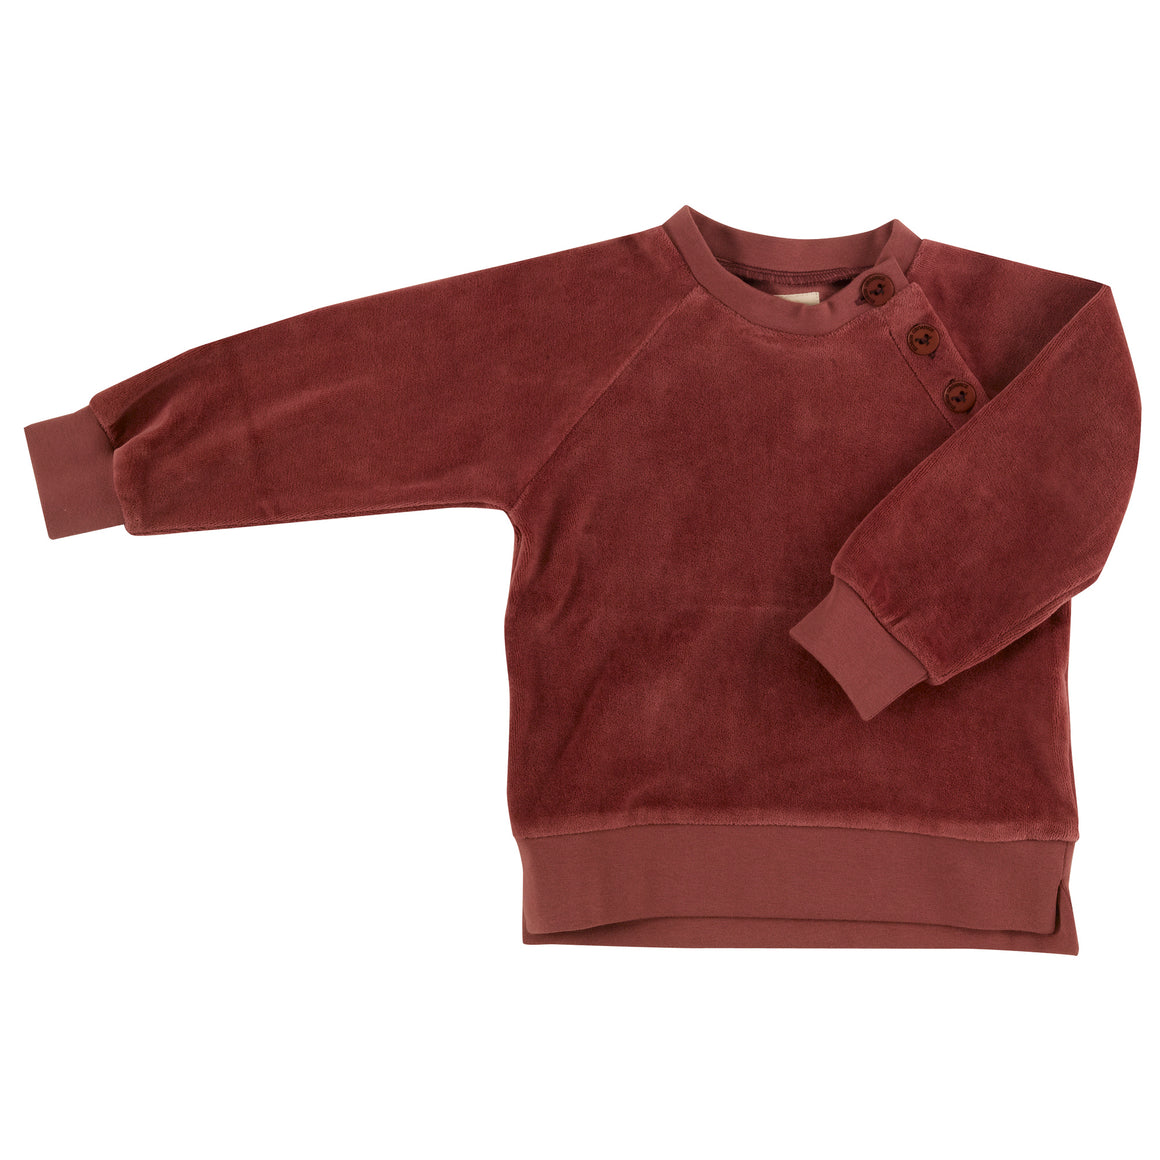 Velour sweatshirt in Spice